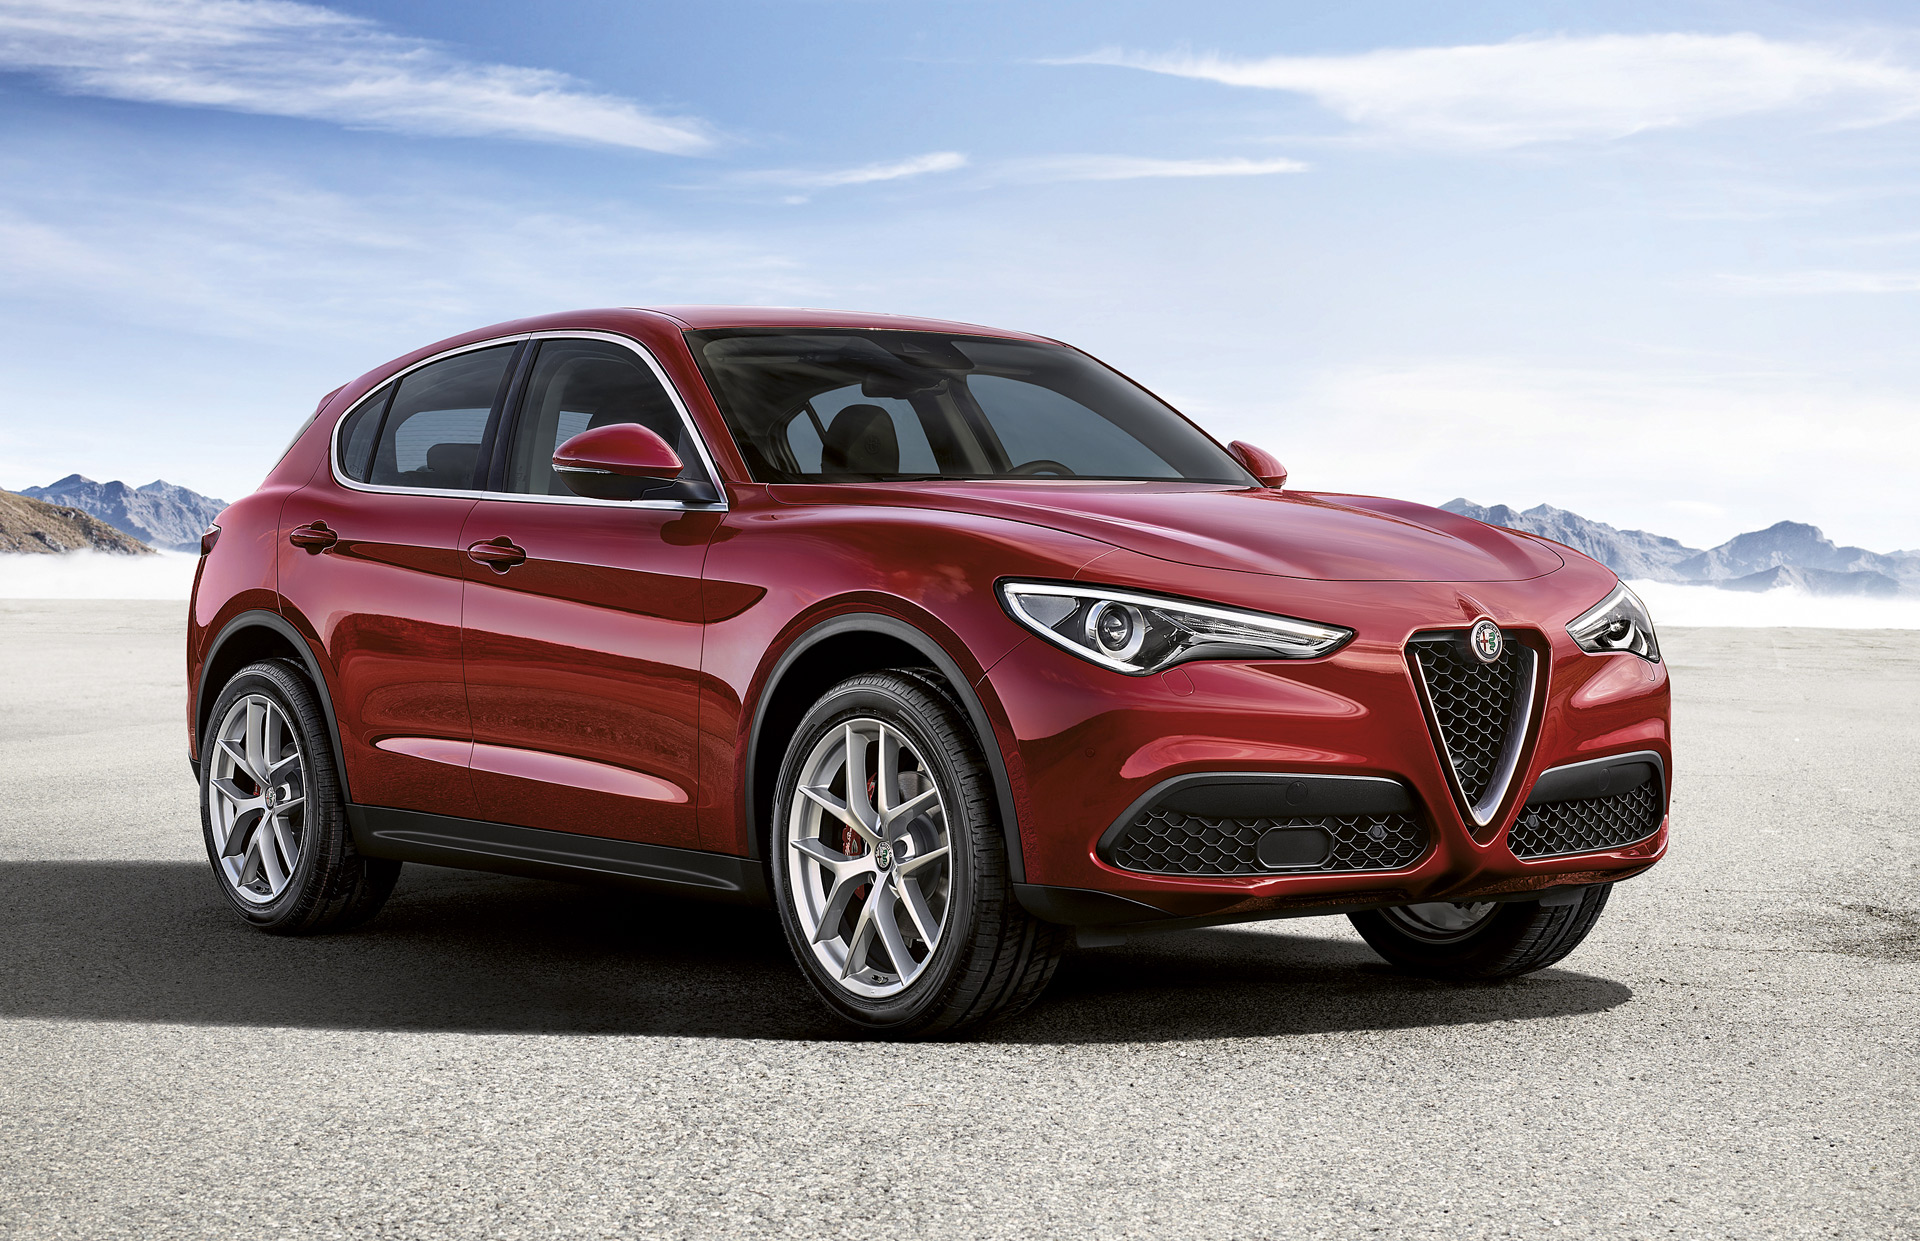 alfa romeo giulietta quadrifoglio verde review with Alfa Romeo Stelvio Preview 2 on Alfa Romeo Giulia Ti Super 85c6f609c94e98c4 as well Alfa romeo giulietta cloverleaf review furthermore Photos likewise Alfa Romeo Giulia 2017 in addition Showthread.